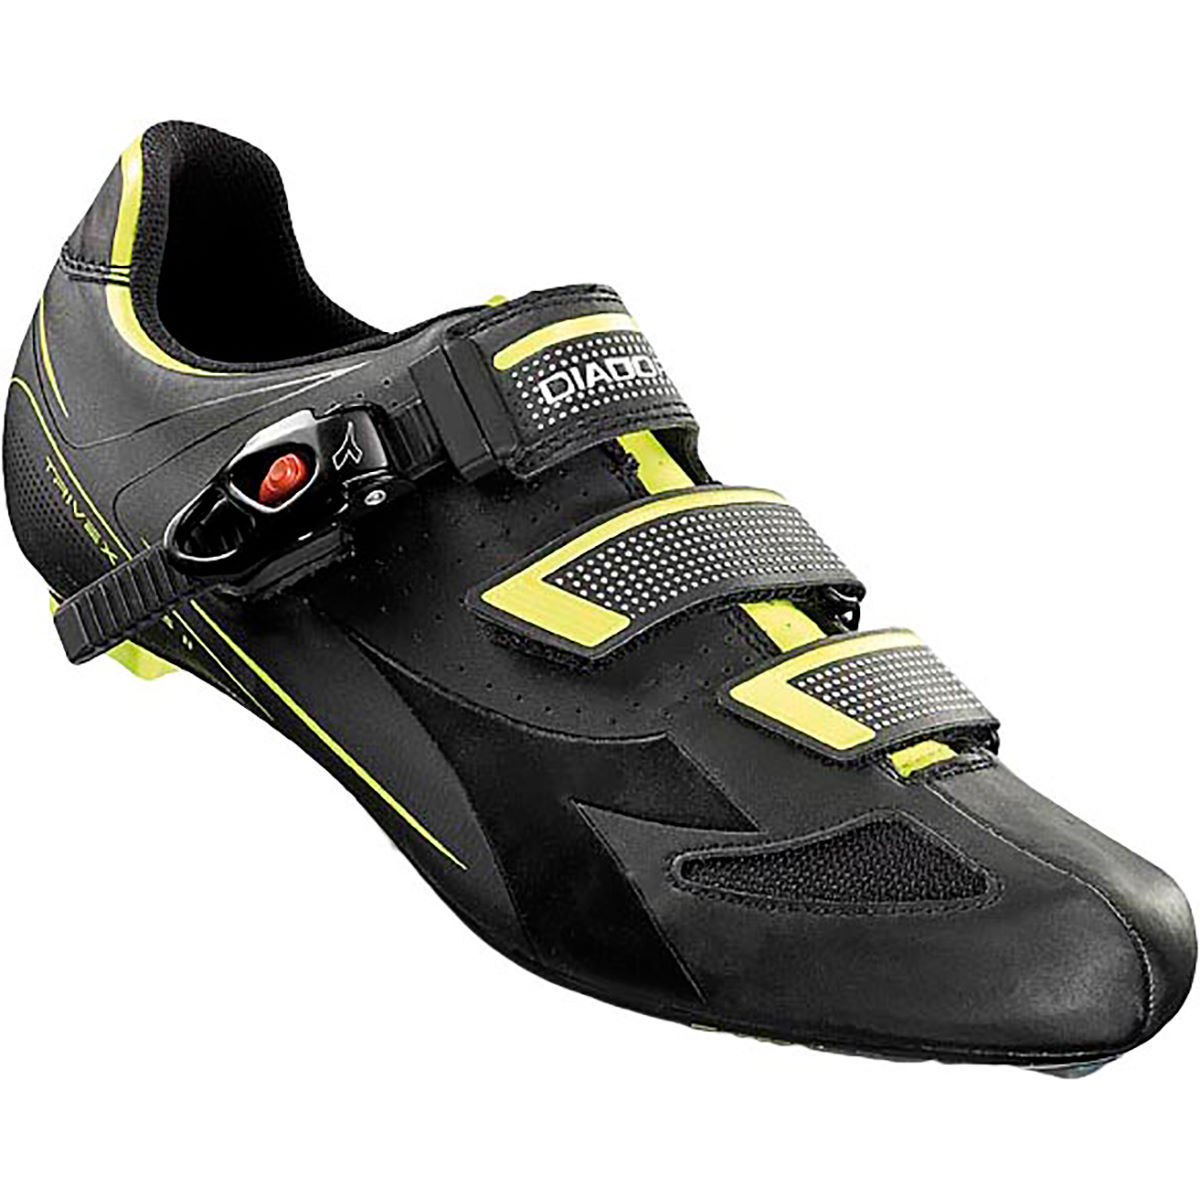 Diadora Trivex Plus II SPD-SL Road Shoes - Zapatillas para bicicletas de carretera